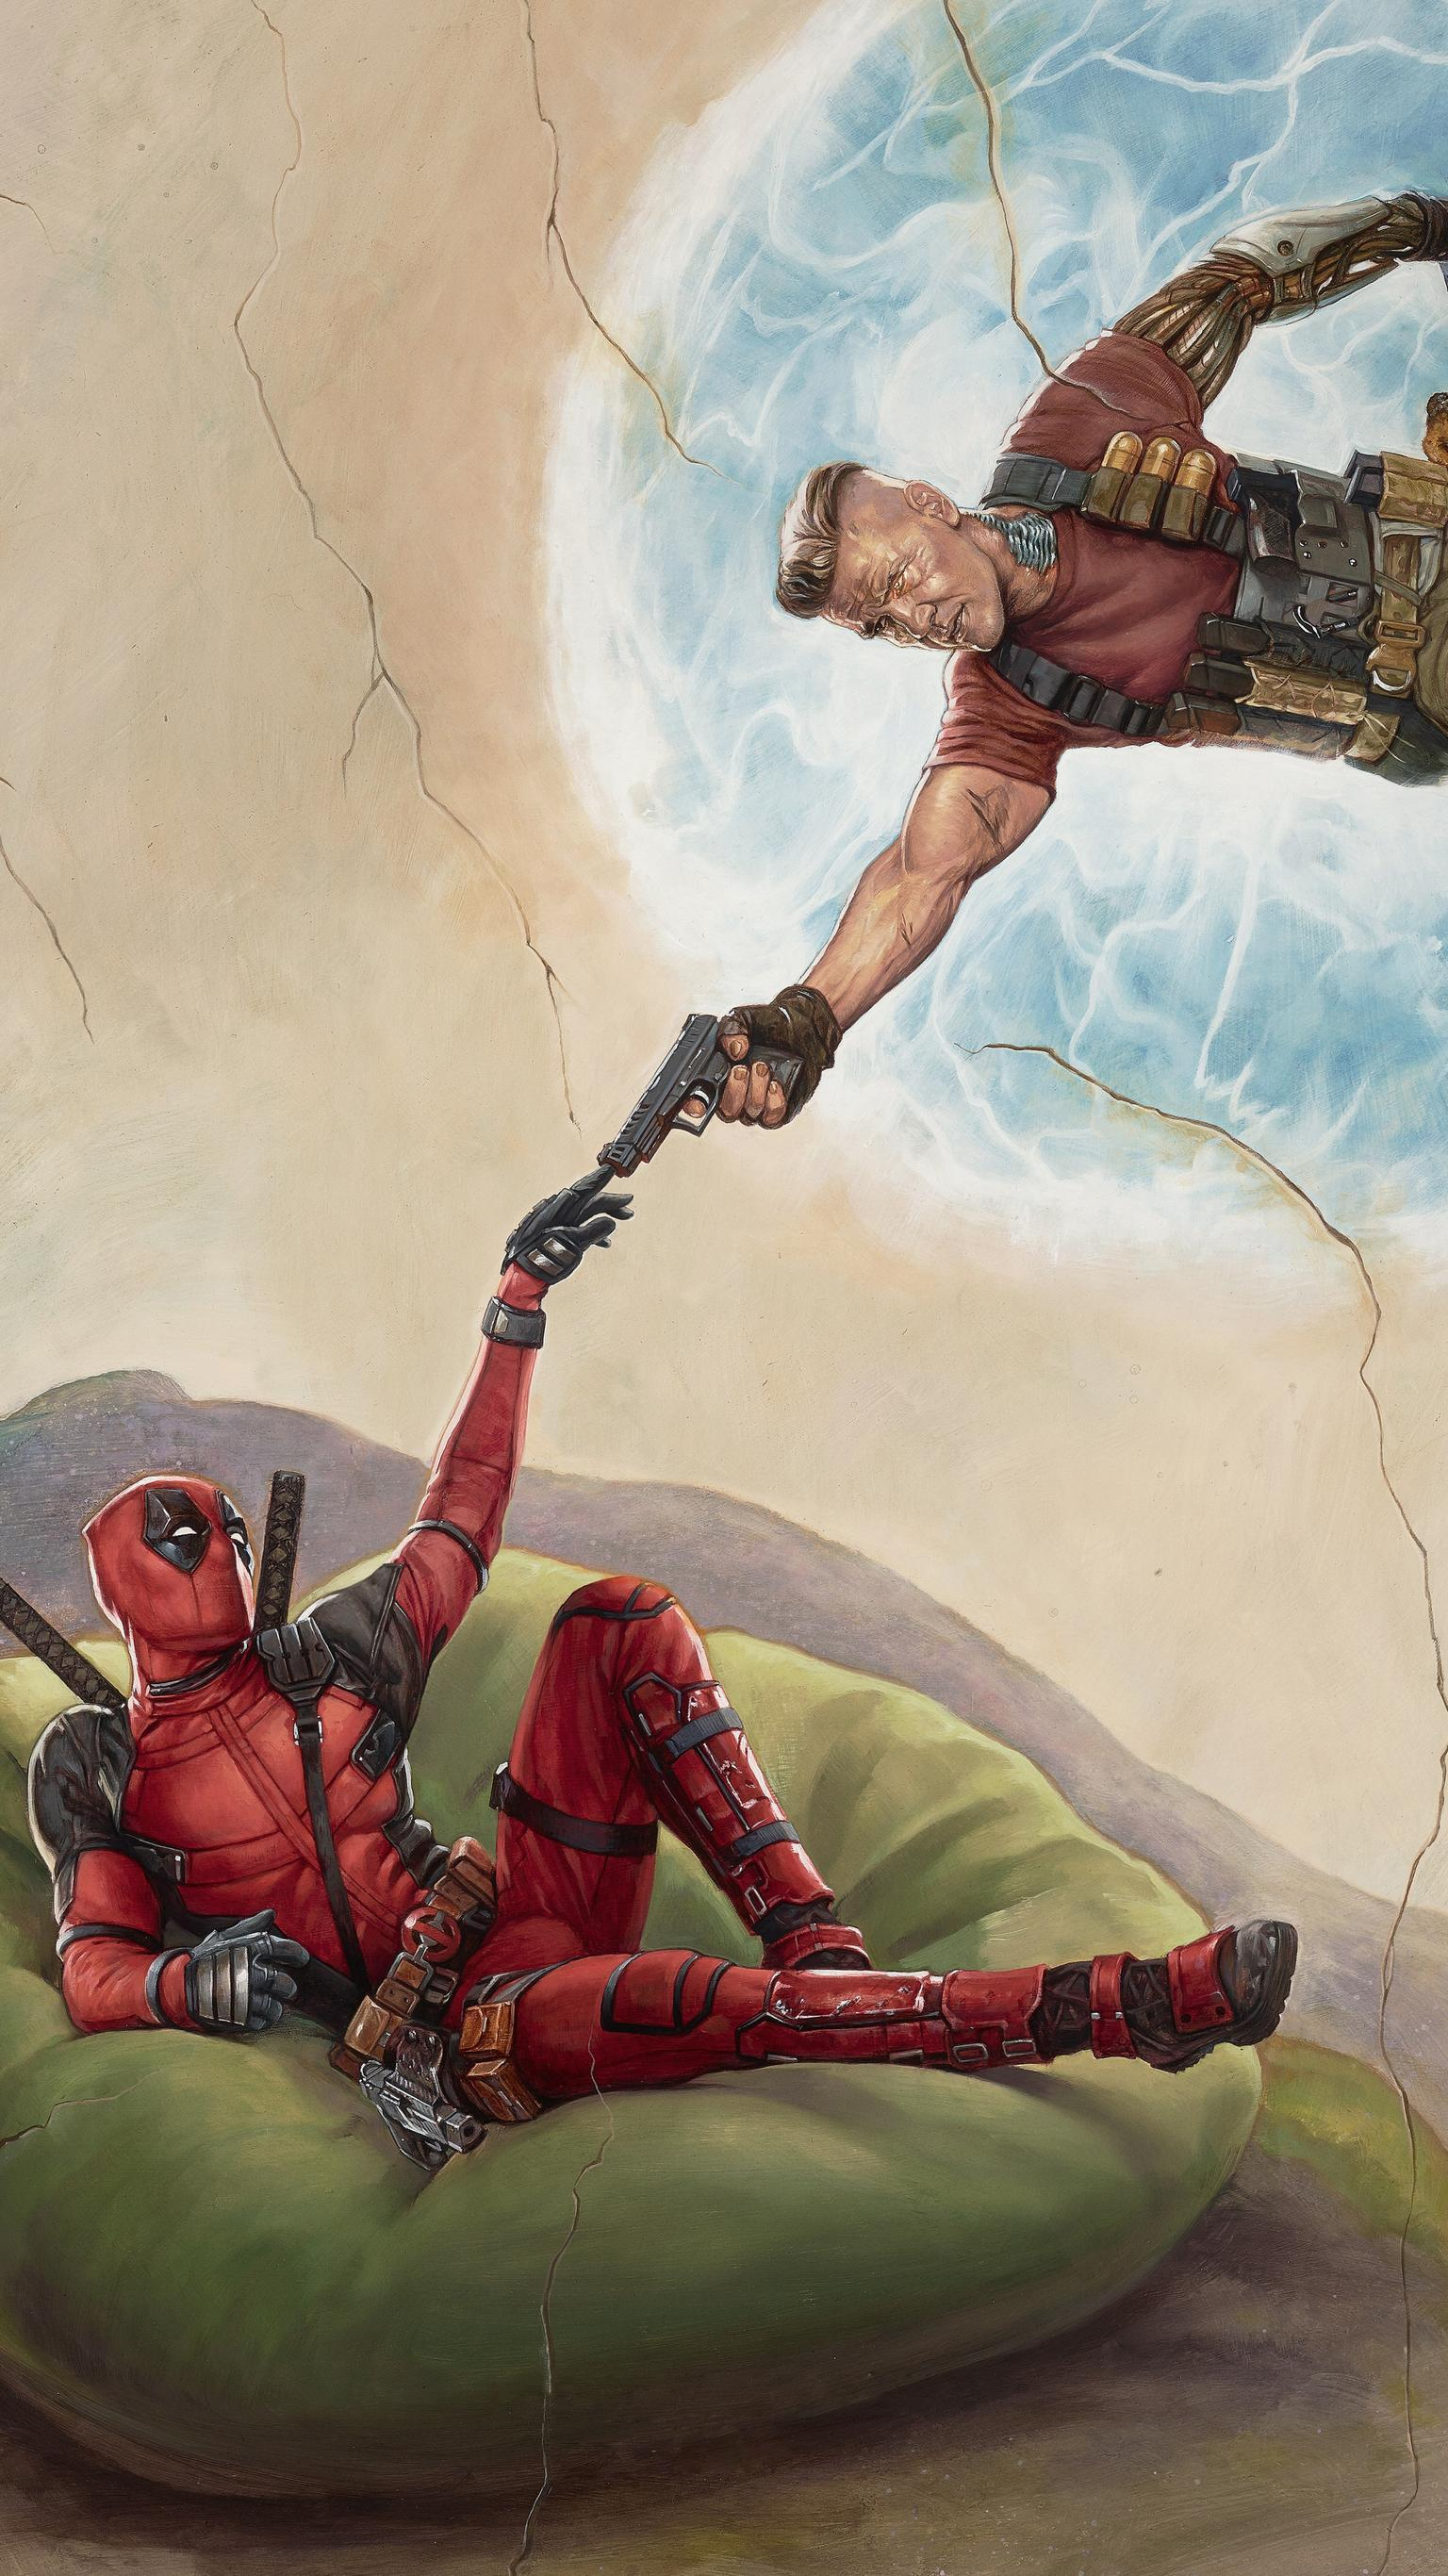 Deadpool 2 Action Wallpapers Wallpaper Cave